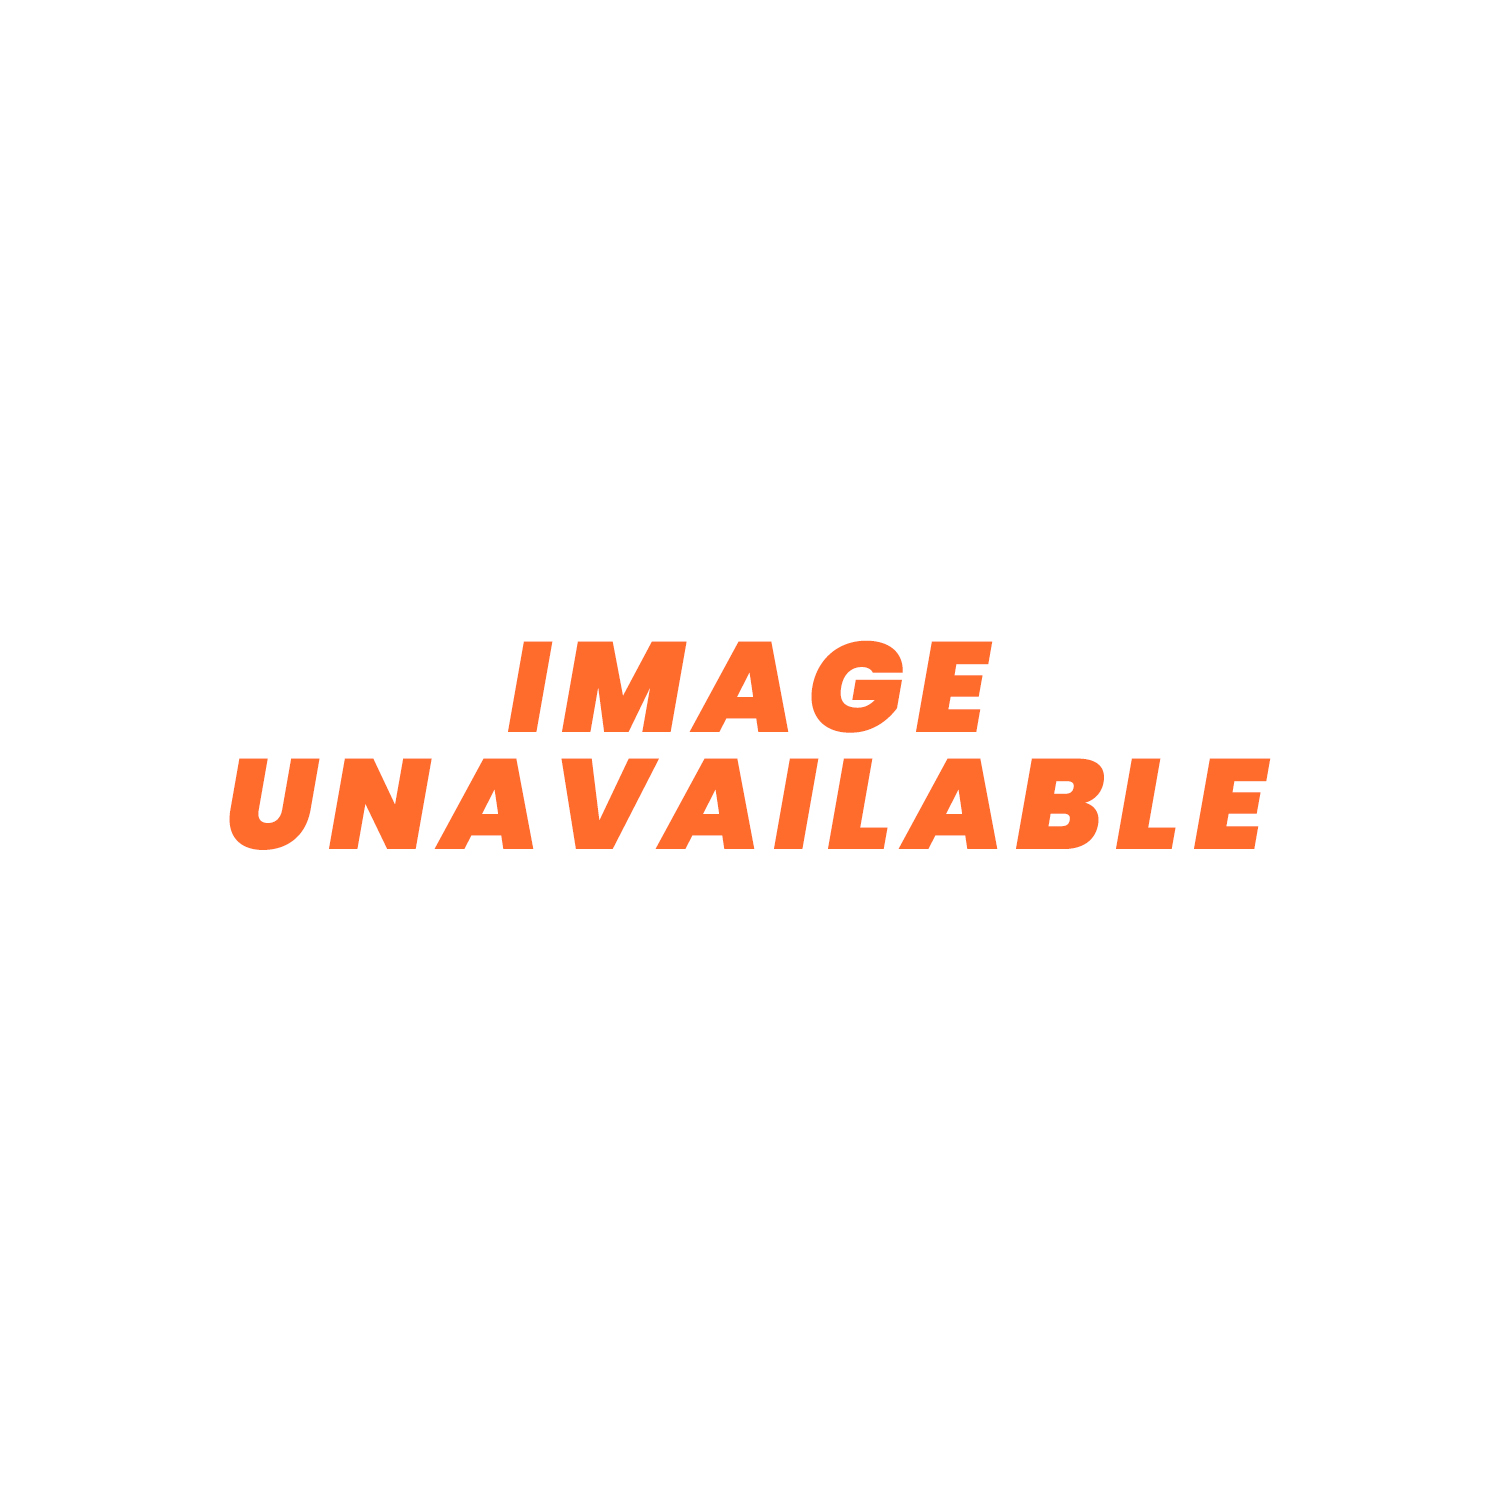 AN06 Stainless Steel Braided Hose